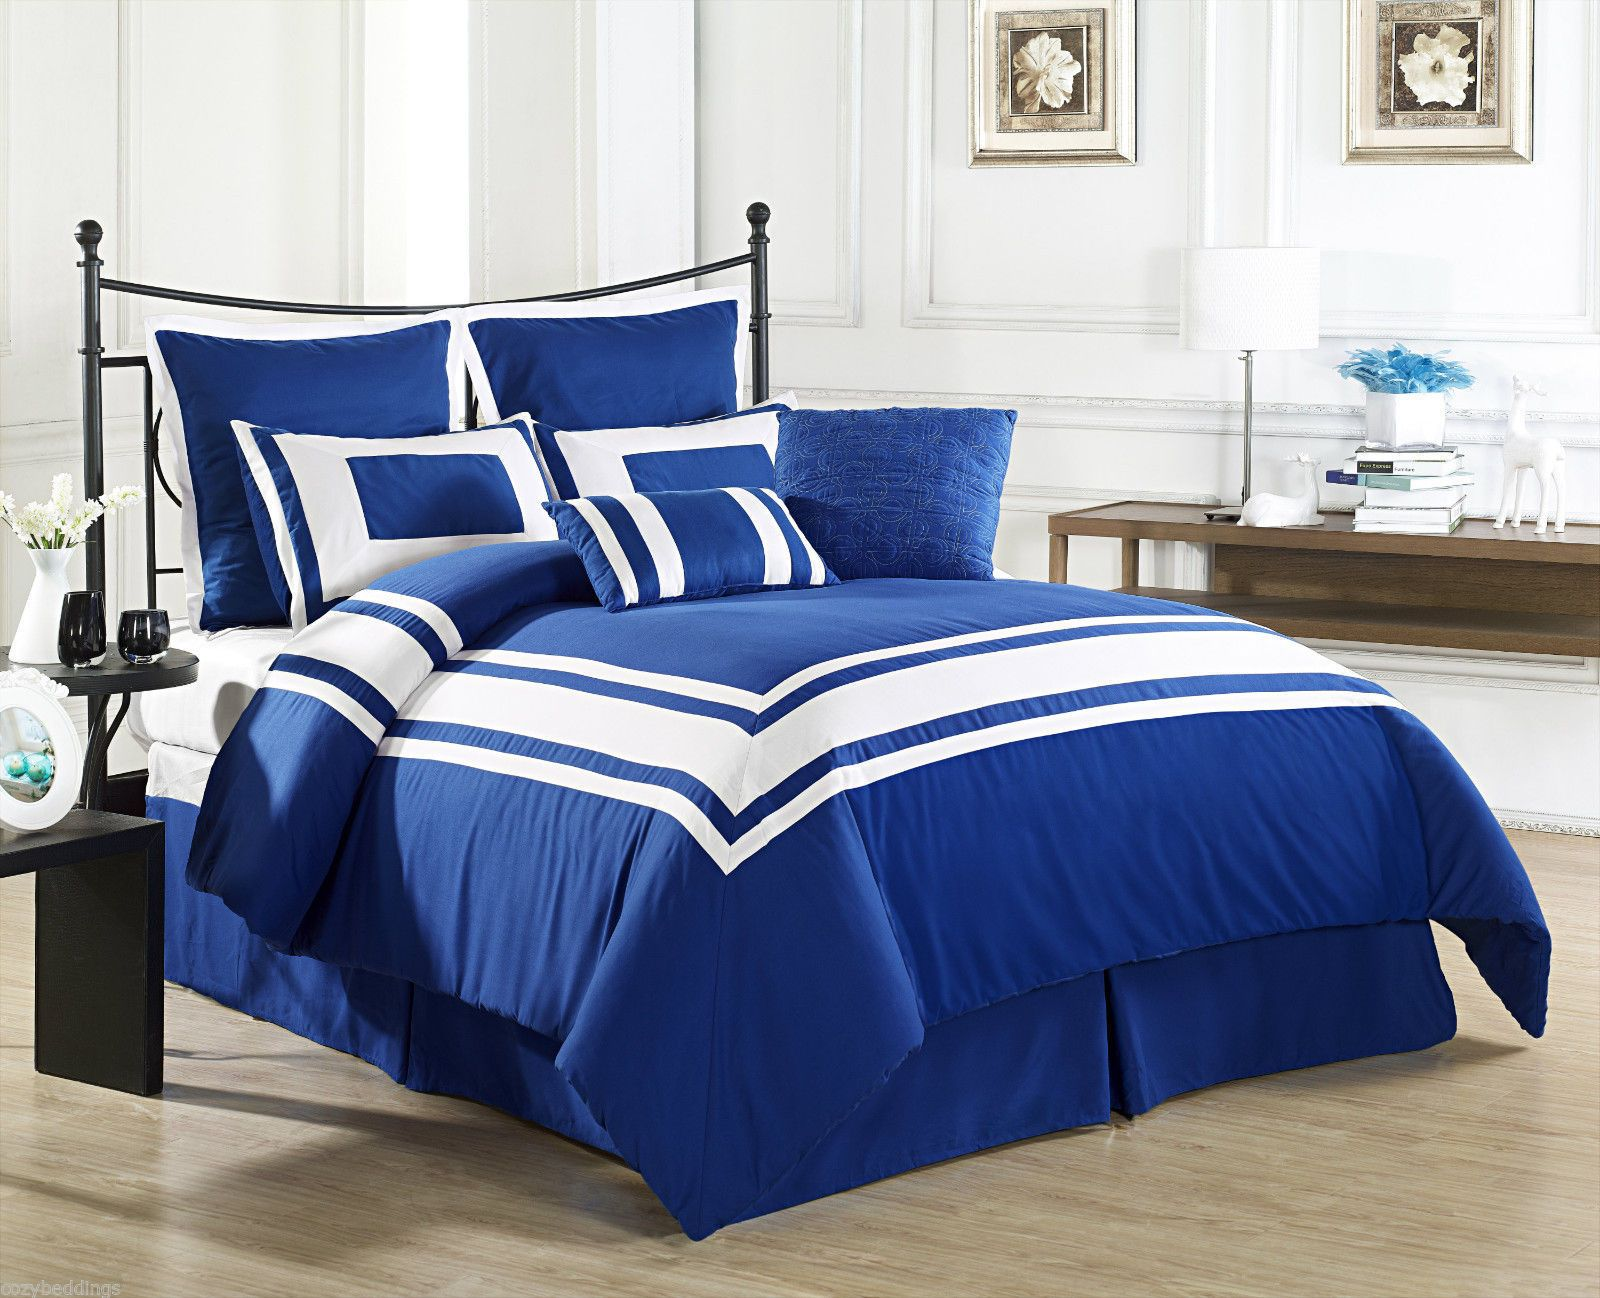 Lux Decor Royal Blue Queen Size Bed 8 Piece Comforter Set White Stripe Bedding Queen Size